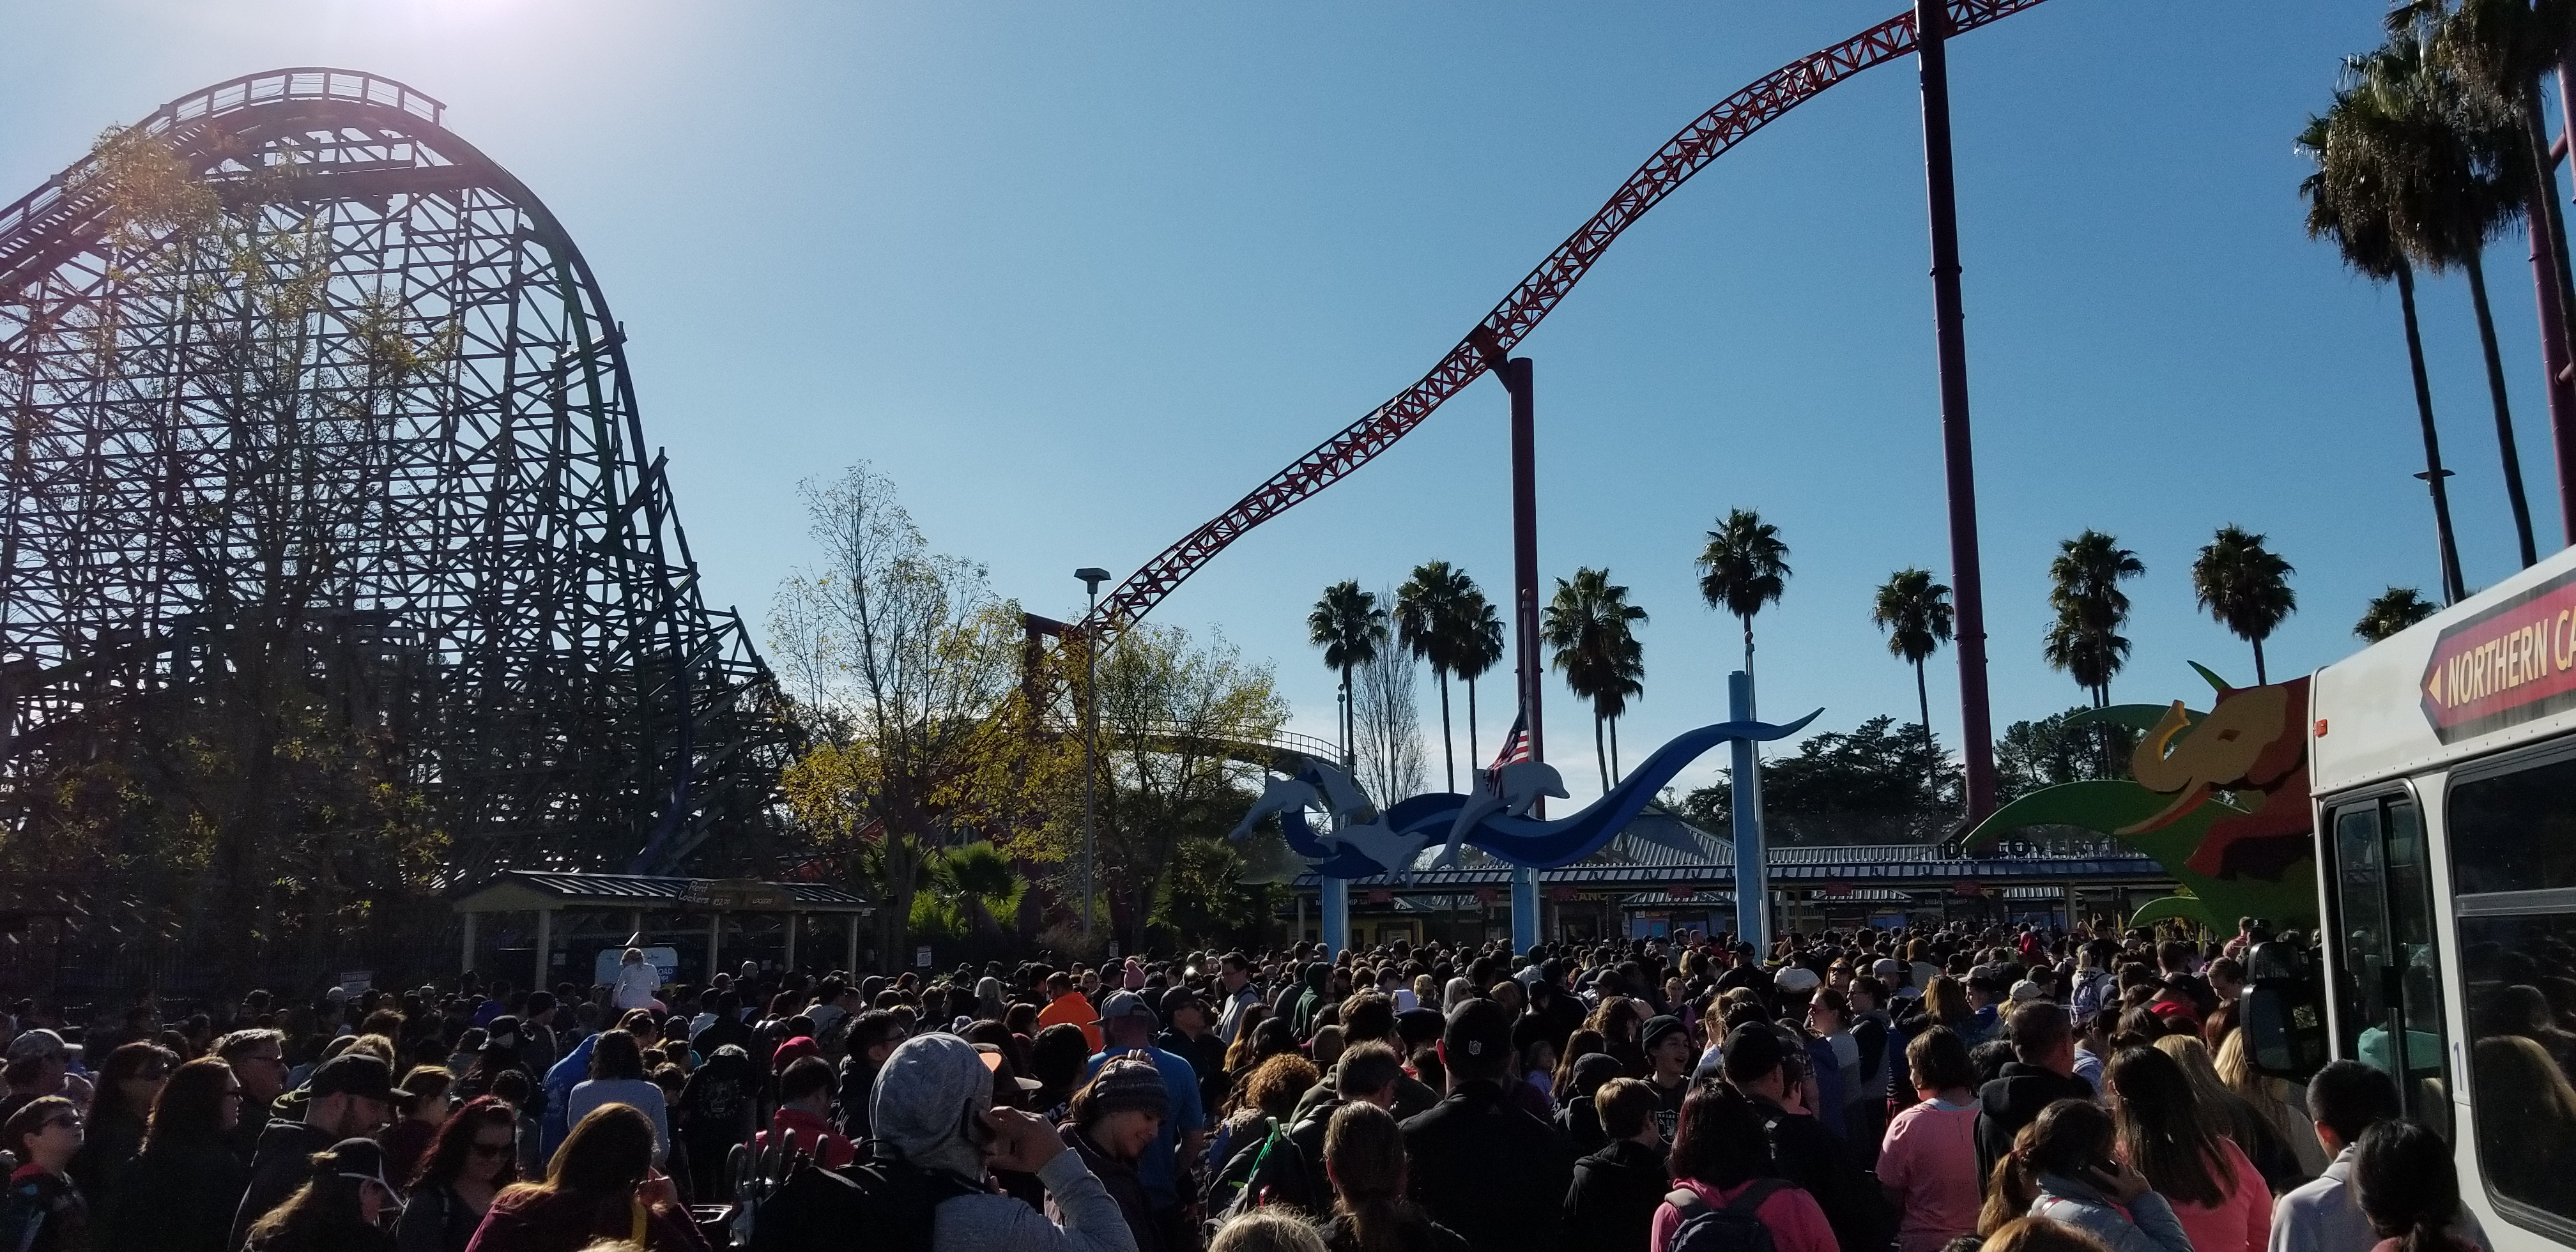 One of the Busiest Days at Six Flags Discovery Kingdom